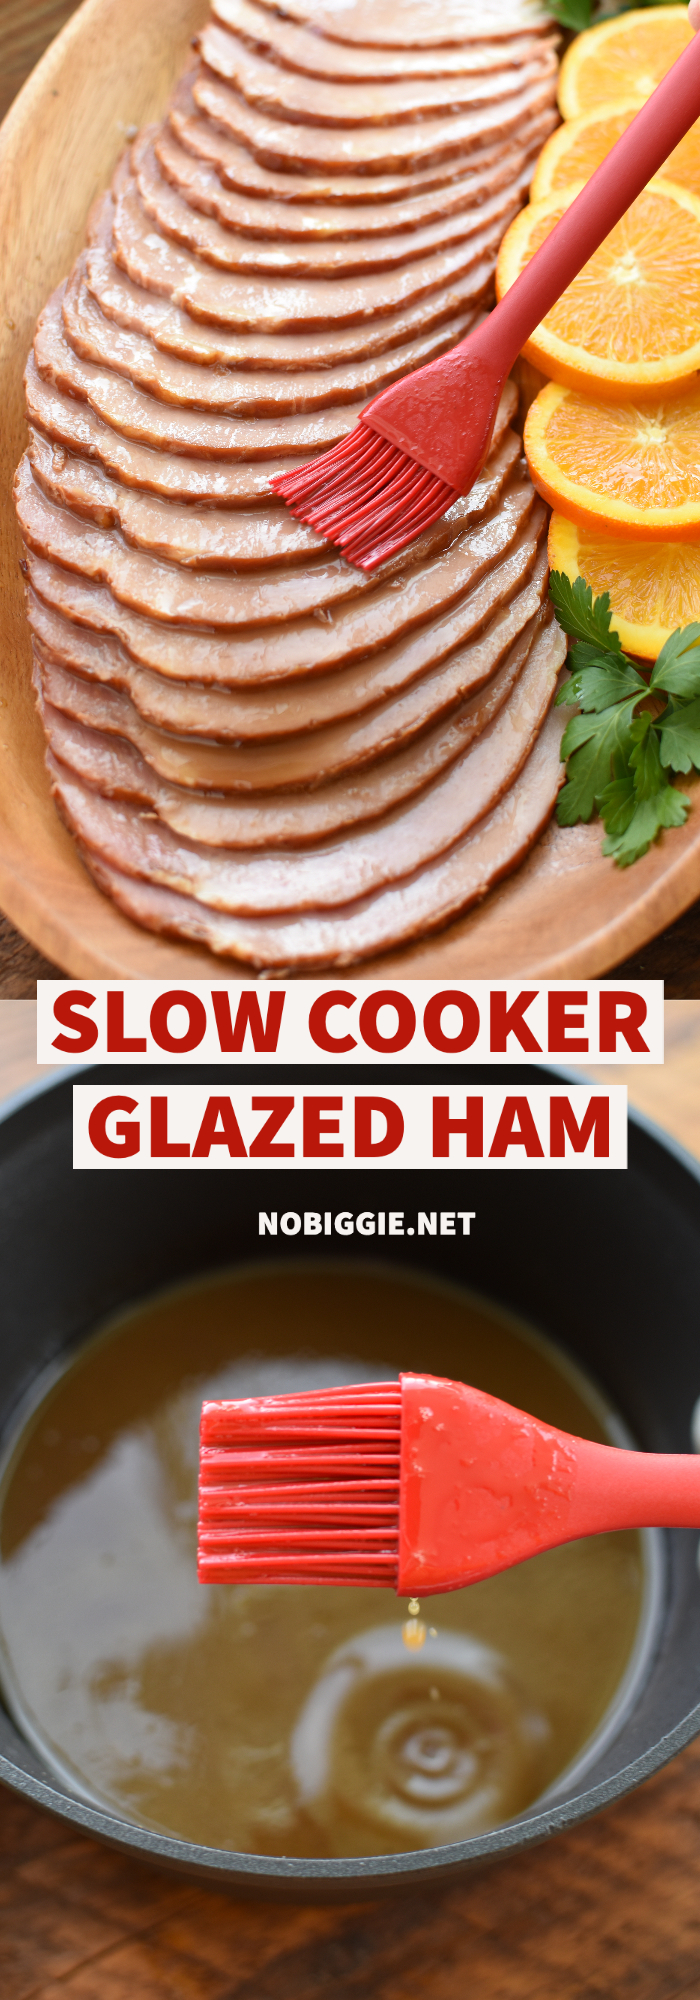 Slow Cooker Glazed Ham | NoBiggie.net